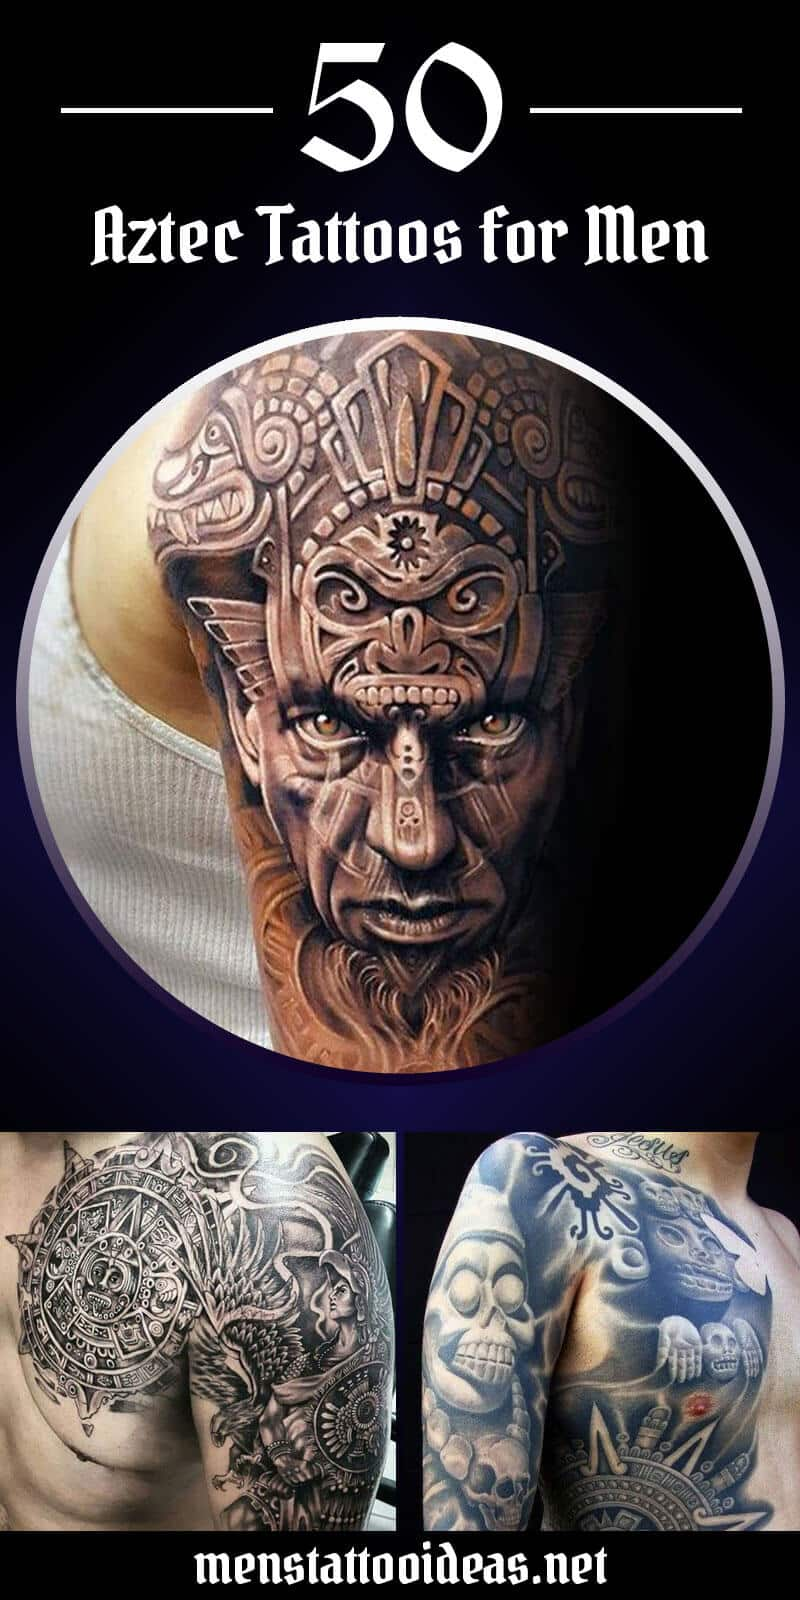 cc2947478 Aztec Tattoos for Men - Ideas and Designs for Guys